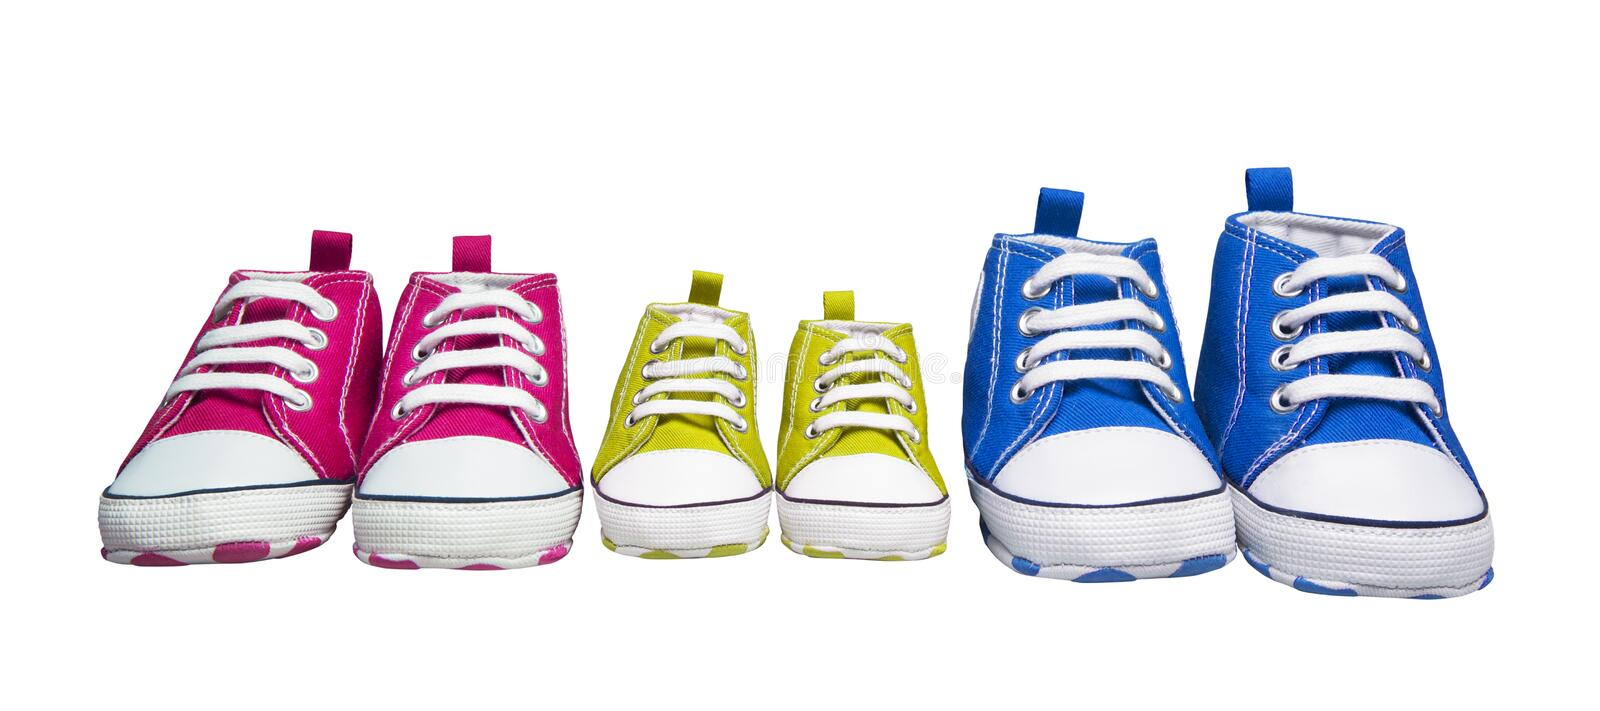 Sneakers Gumshoes, Baby Color Sport Shoes, Children Fashion Foot. Wear for Kids, white isolated with clipping path royalty free stock image